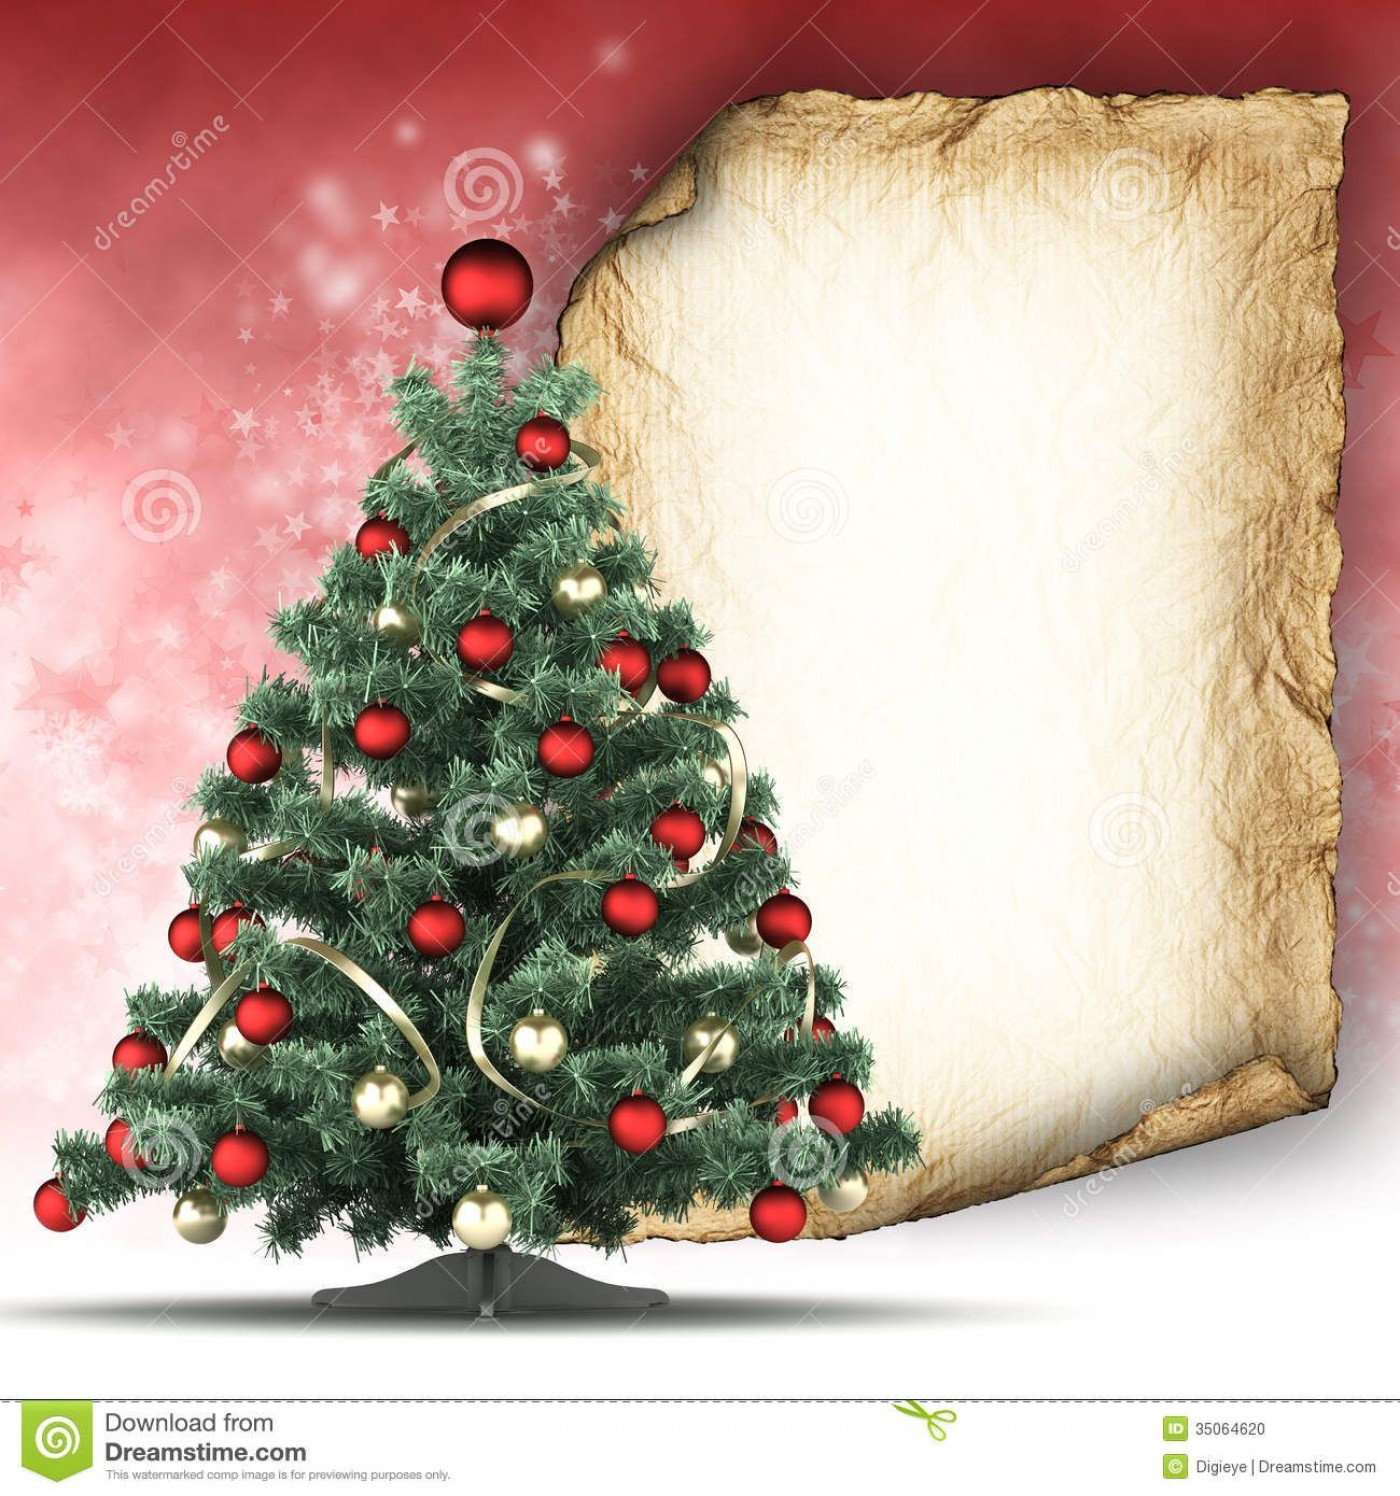 007 Remarkable Christma Card Template Free Download Image  Photo Xma Place1400